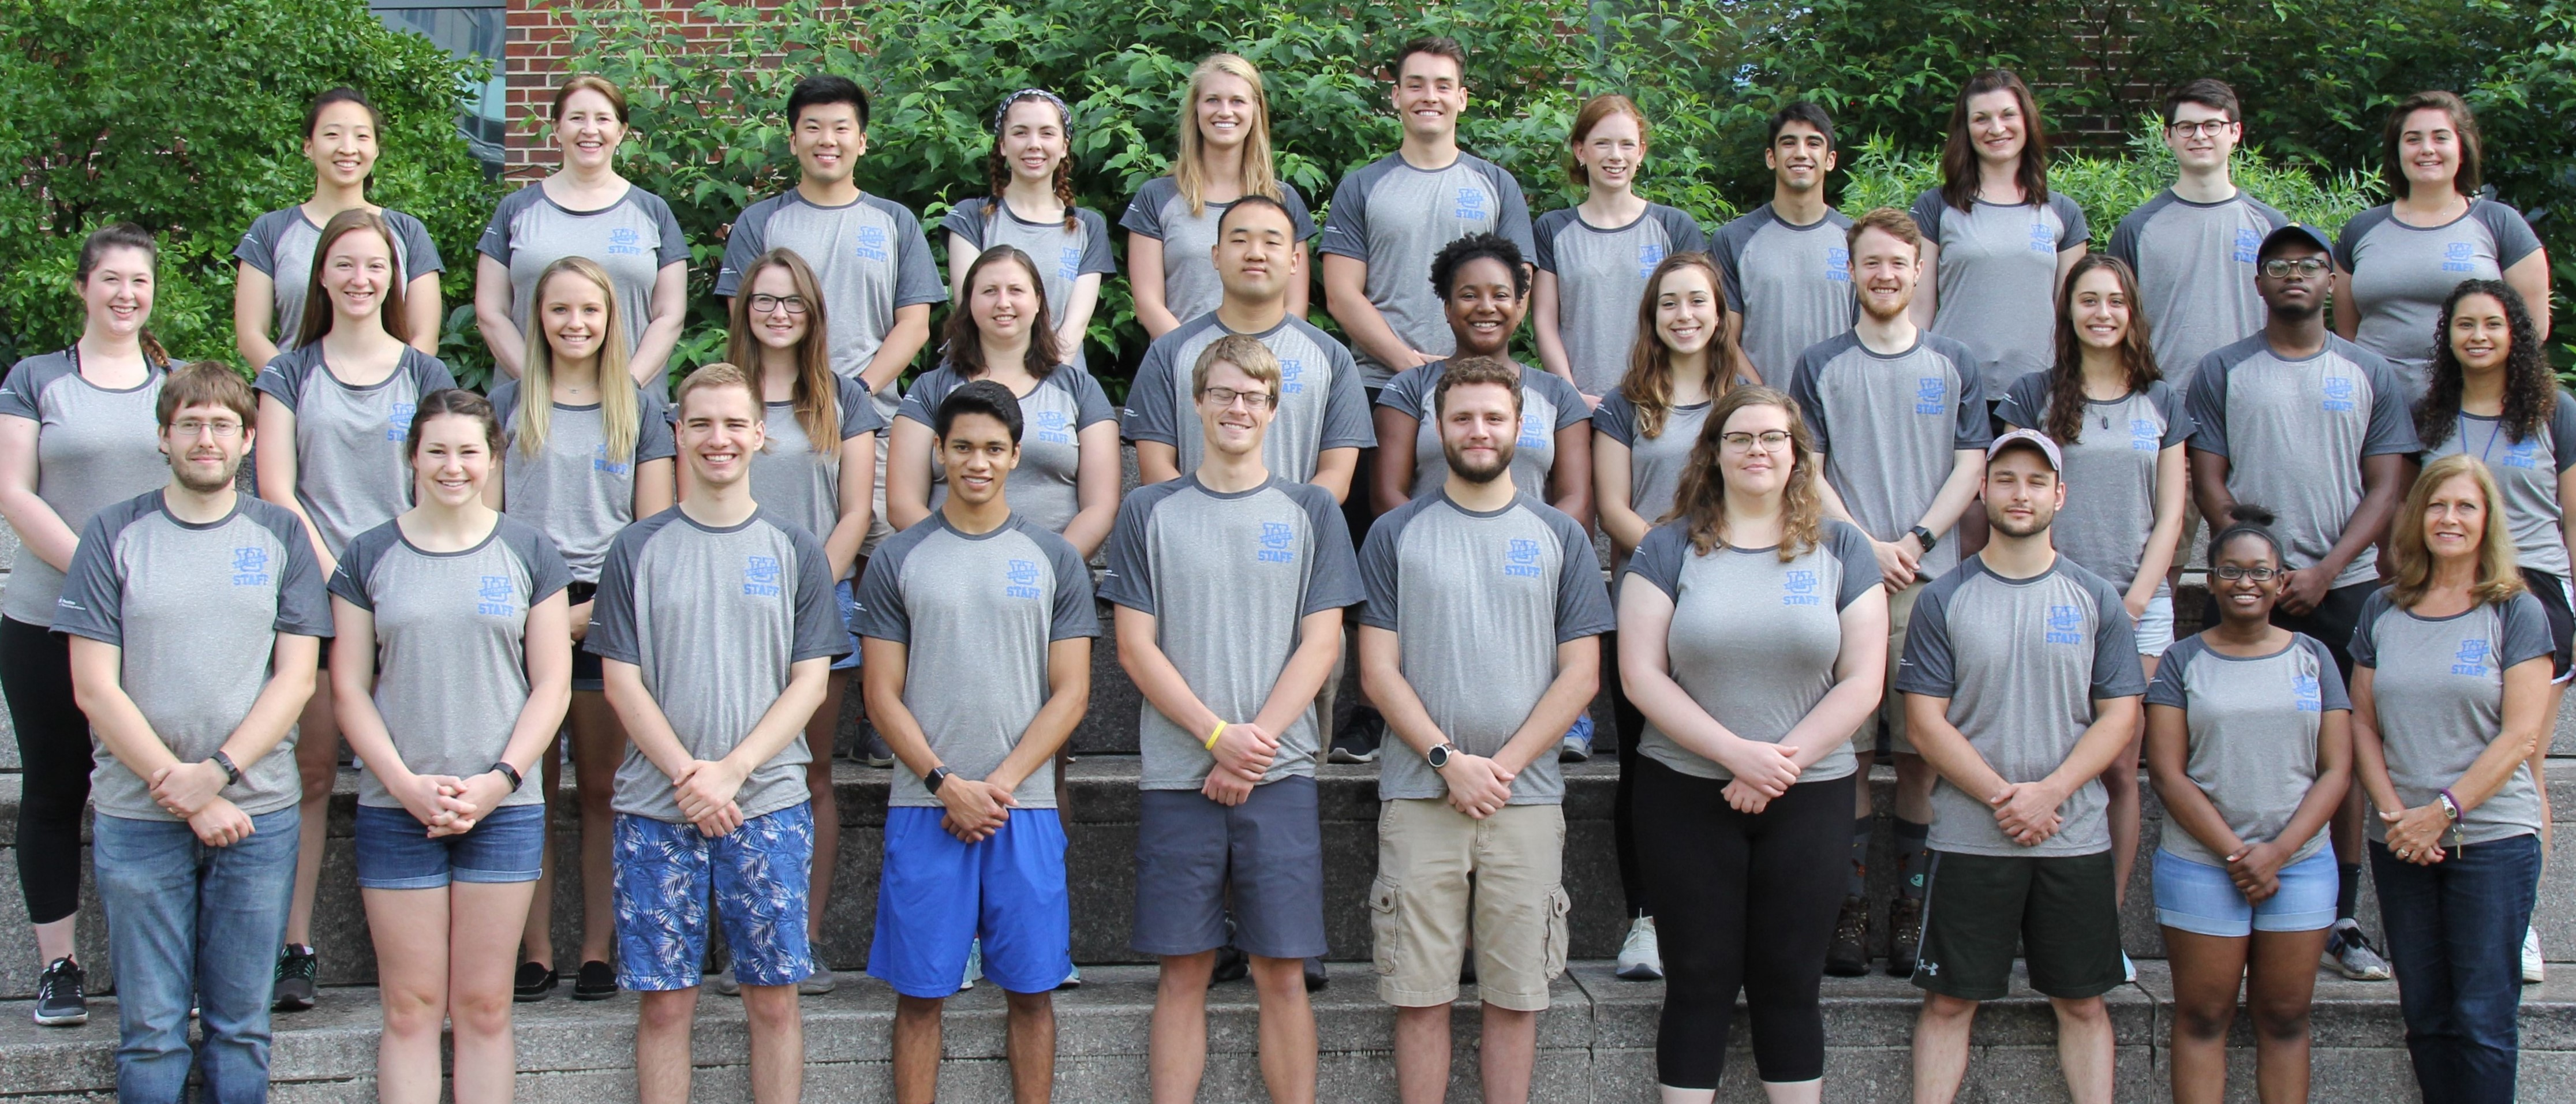 2019 Summer Staff posing for group photo